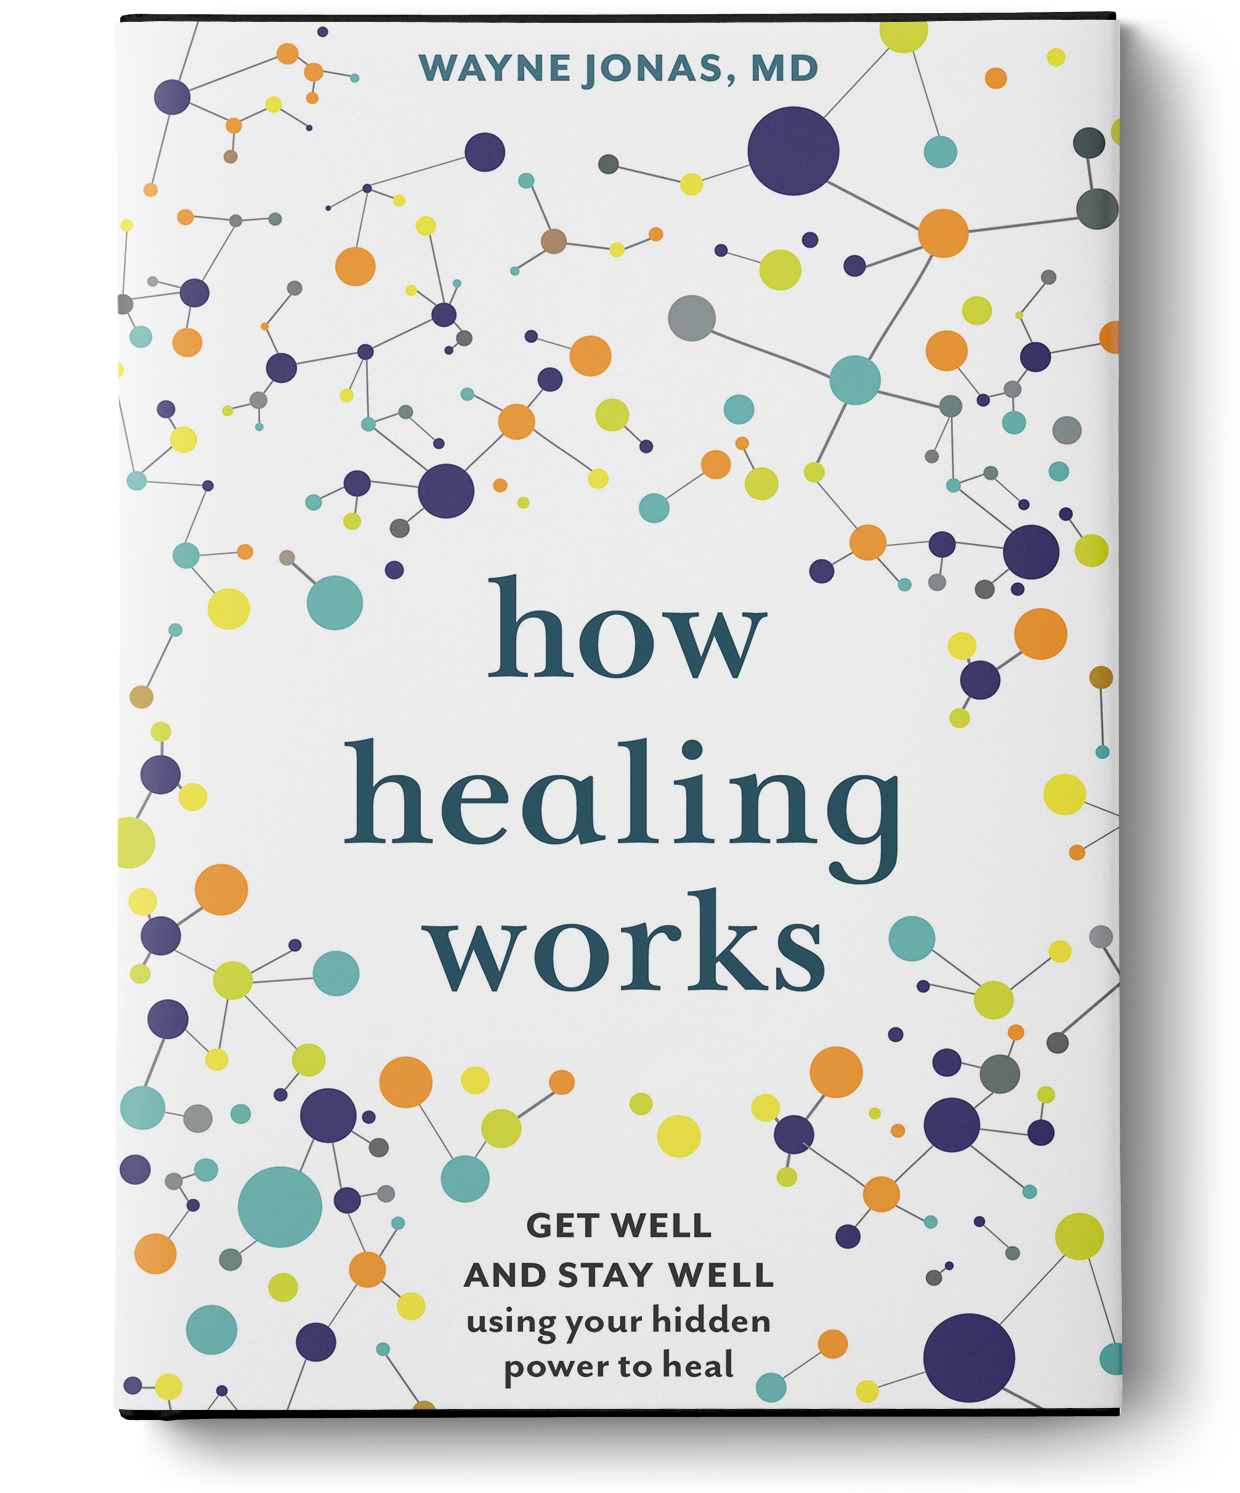 How Healing Works: Get Well and Stay Well Using Your Hidden Power to Heal, by Wayne Jonas M.D.